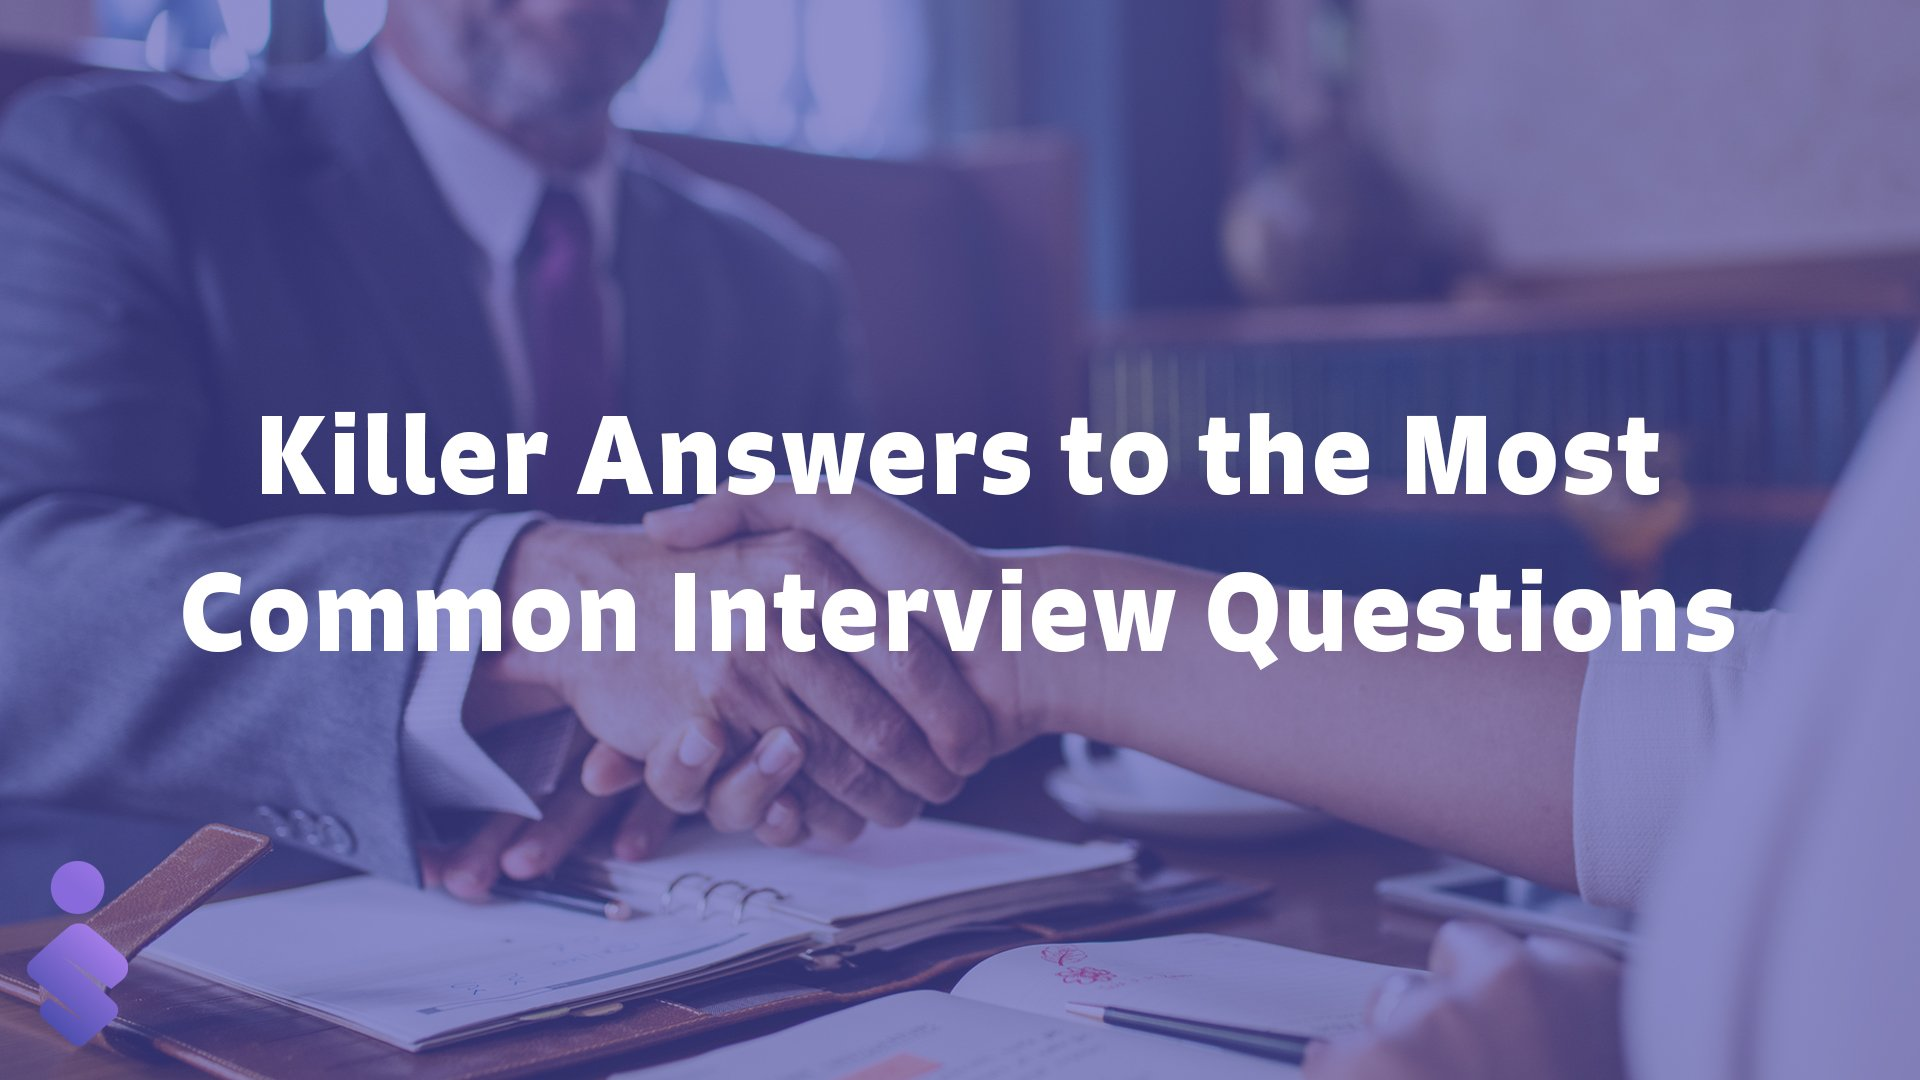 Killer Answers to the Most Common Interview Questions 2020 - Blogs & Articles